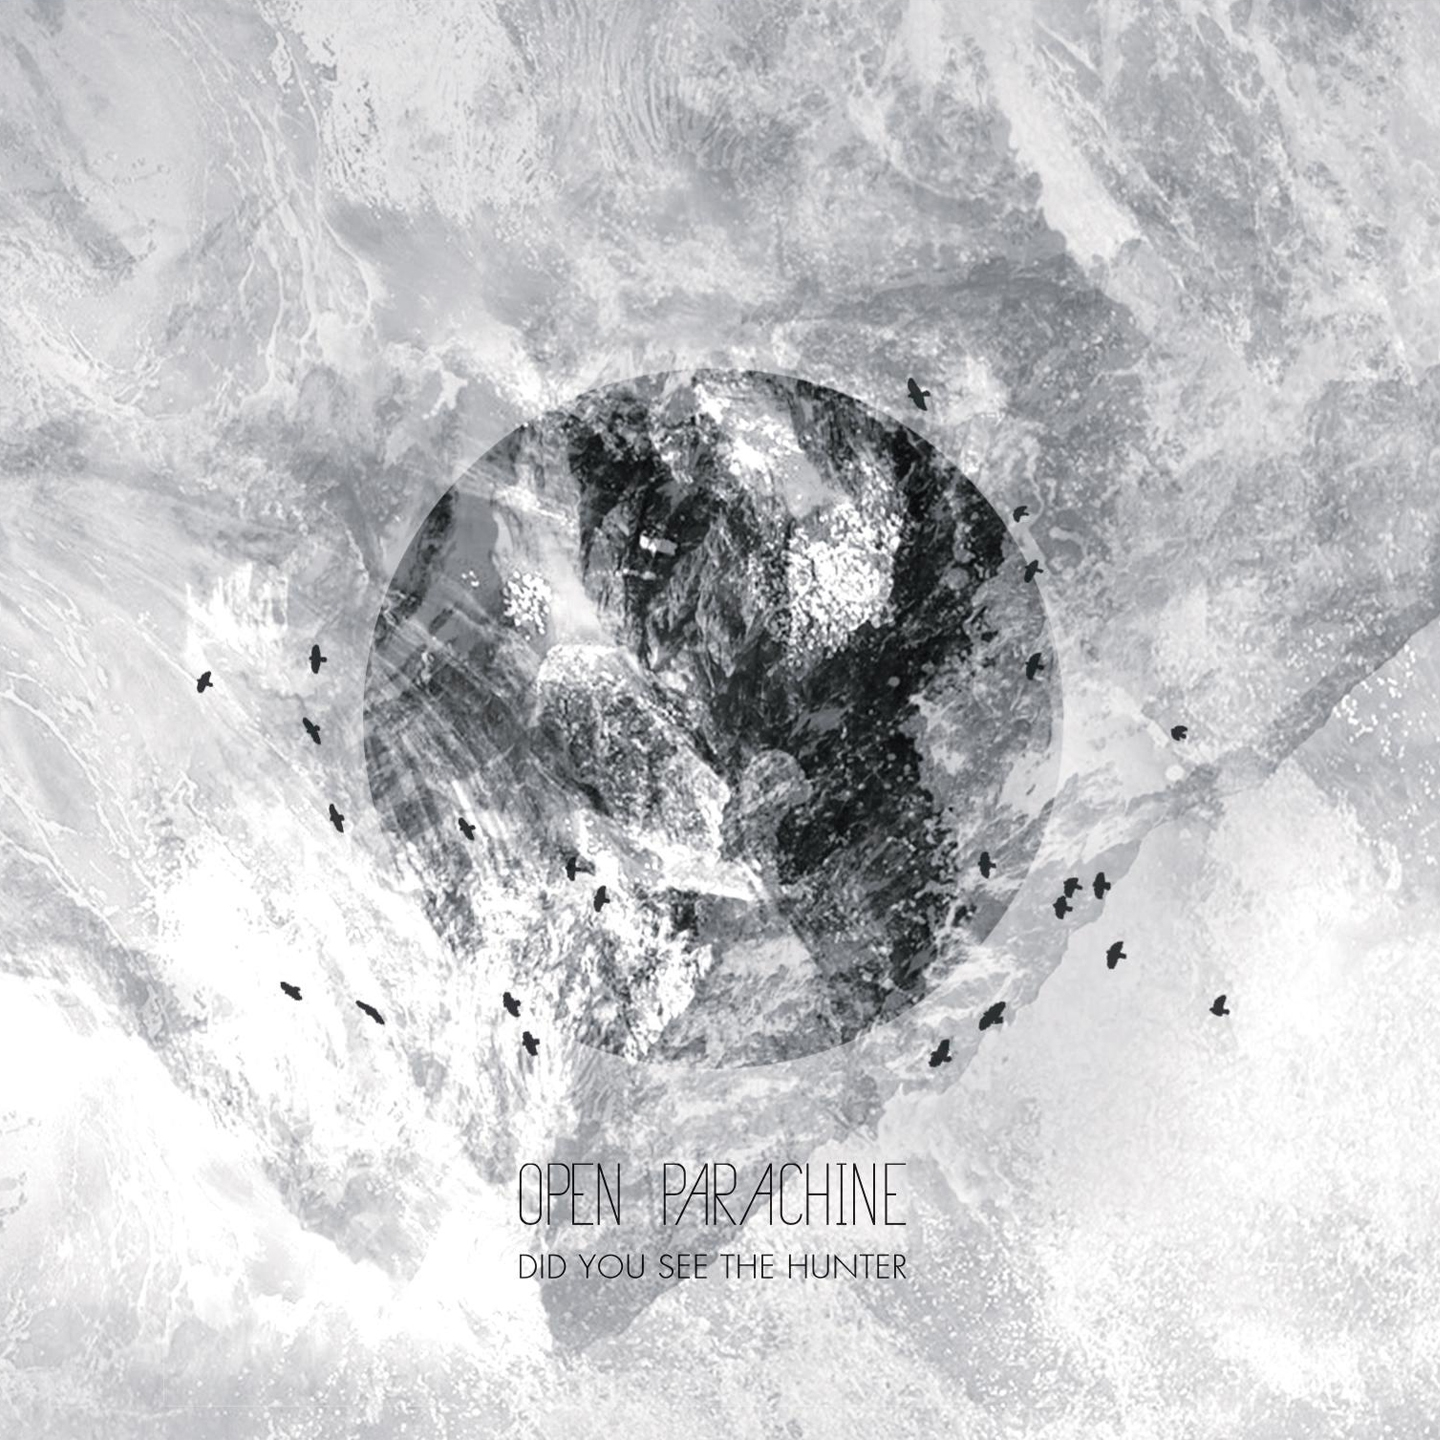 Open Parachine - Did You See The Hunter - Artwork